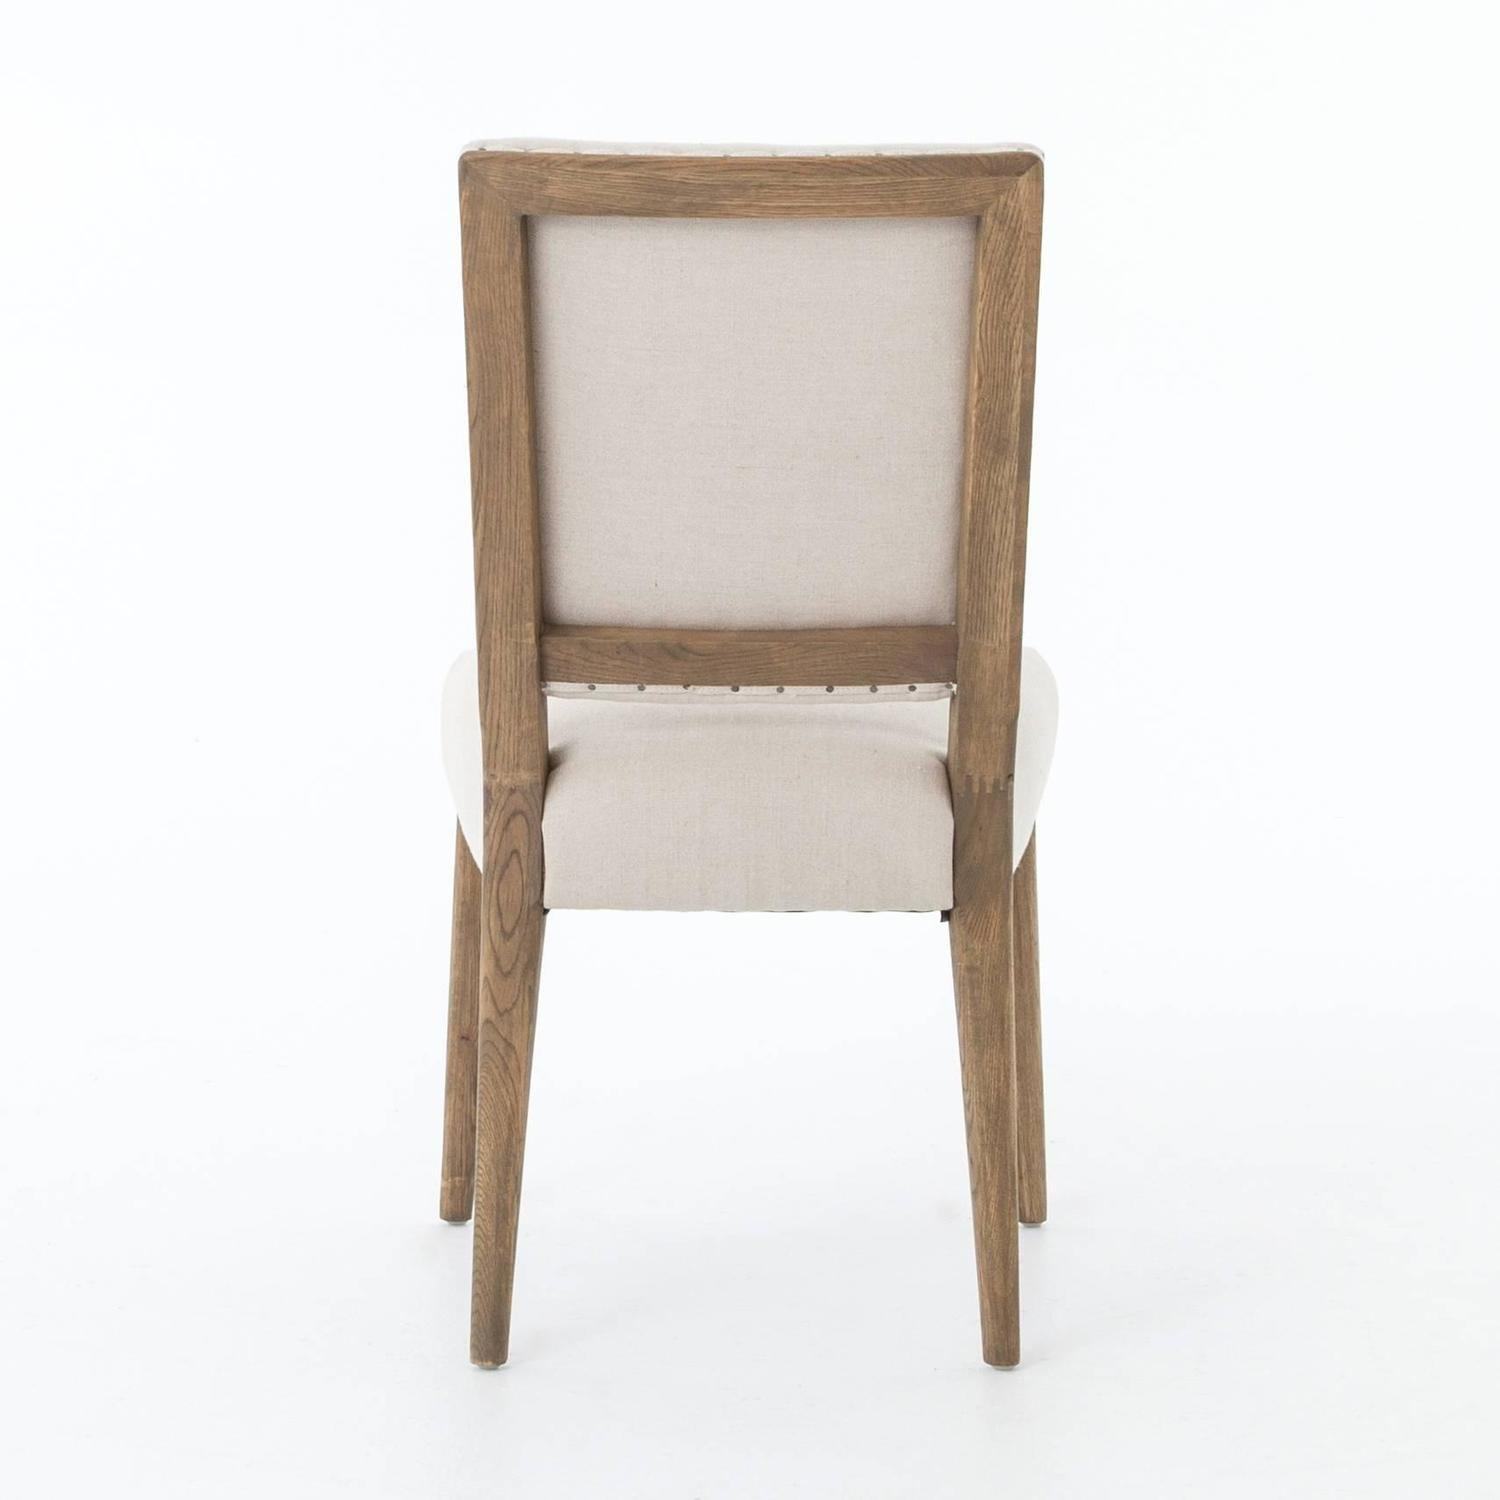 upholstered dining chair for sale at 1stdibs ForUpholstered Dining Chairs For Sale